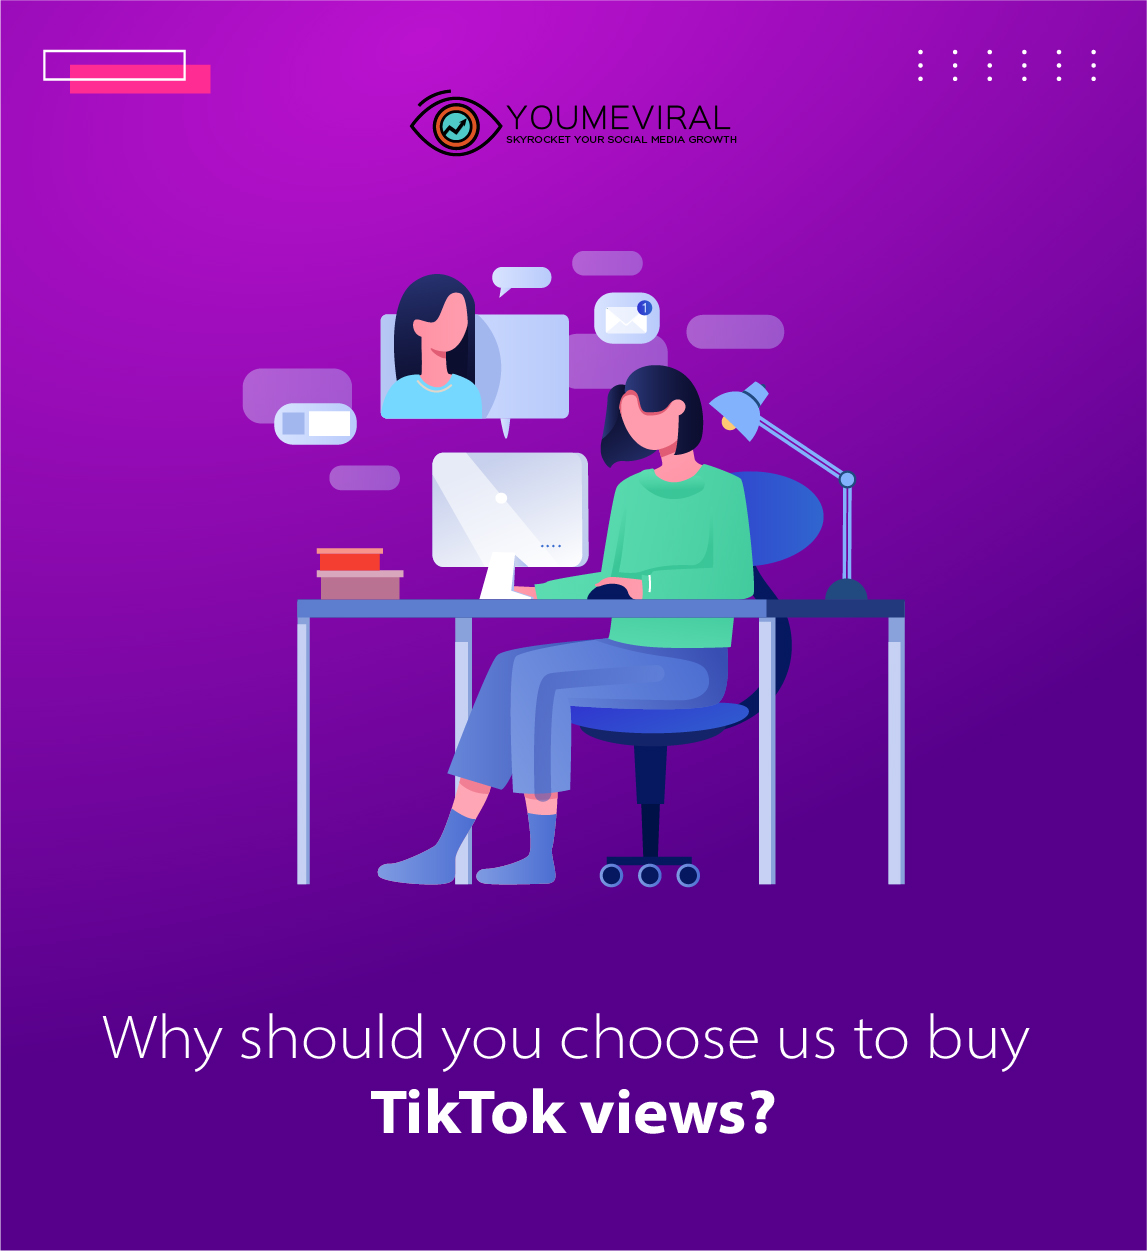 Why should you choose us to buy TikTok views?